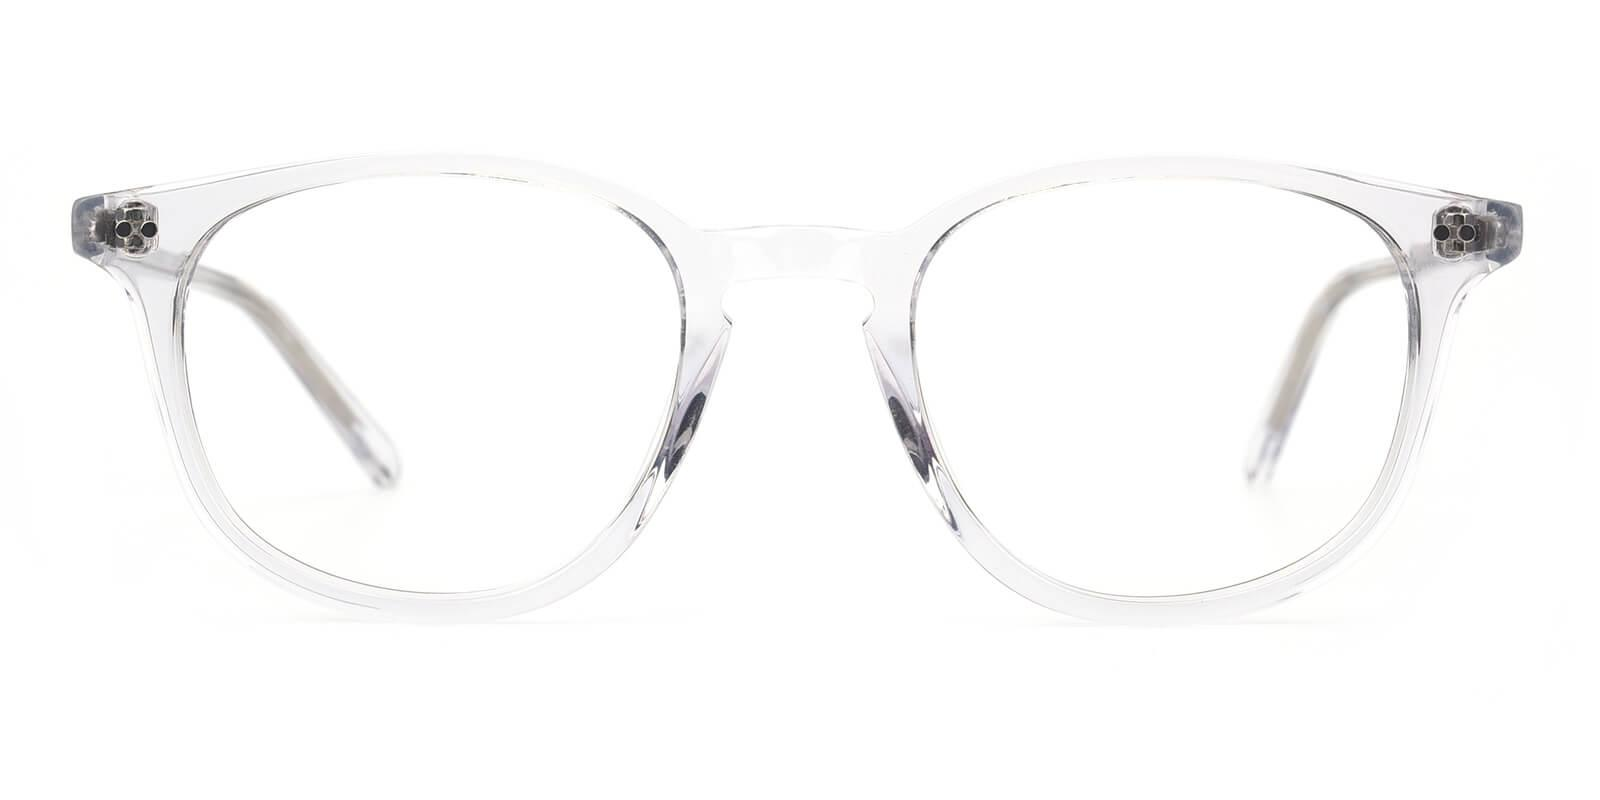 Trendiary-Translucent-Square-Acetate-Eyeglasses-additional2